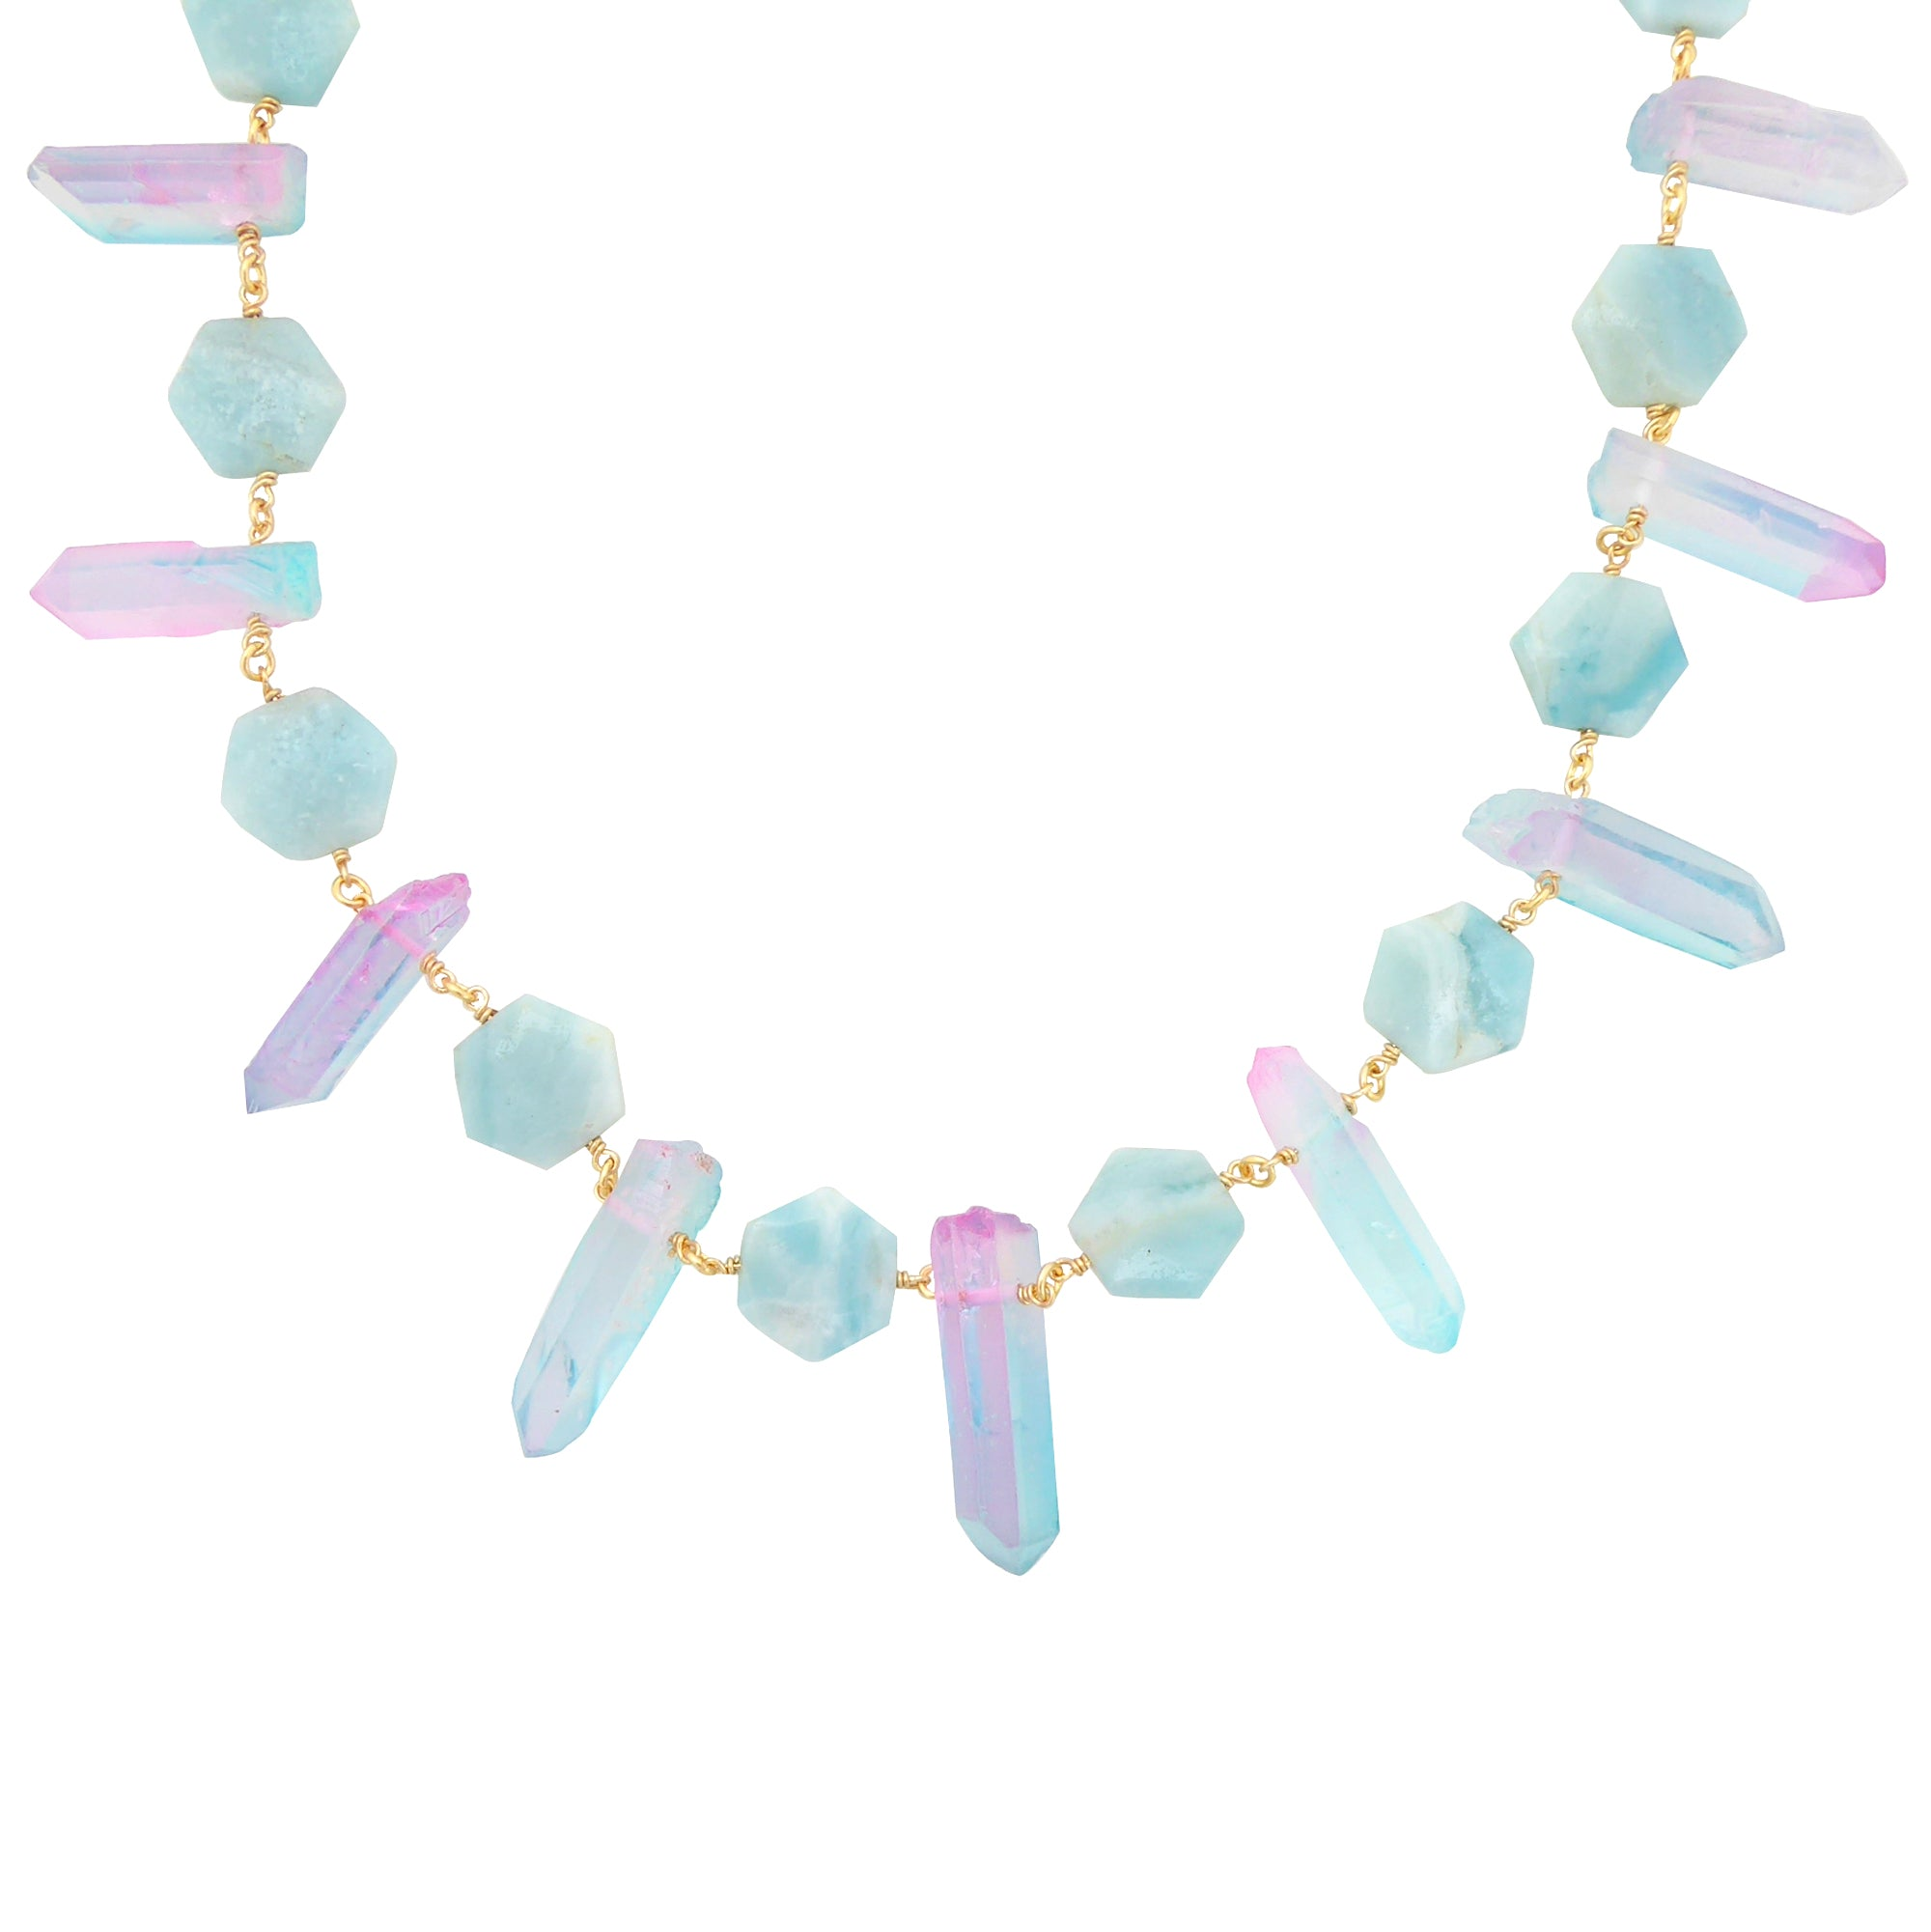 Pastel crystal necklace